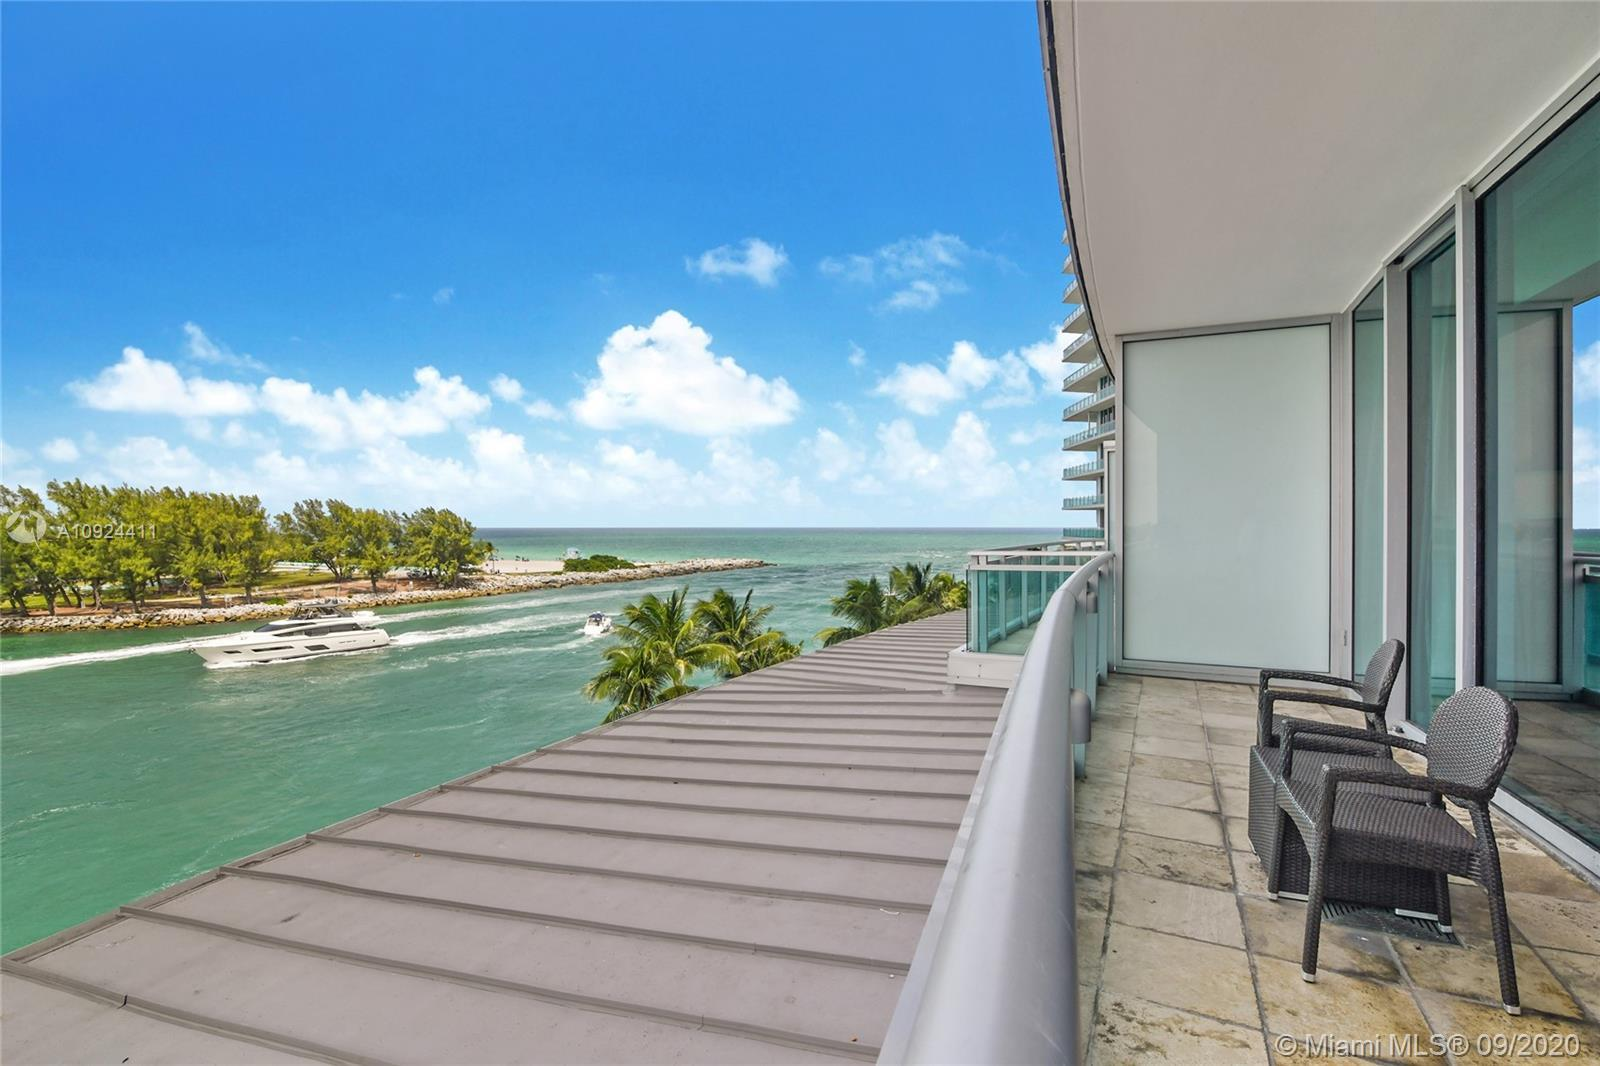 Luxurious apartment at Ritz Carlton Bal Harbour building. 2 bedrooms, 2 bathrooms + guest bathroom,